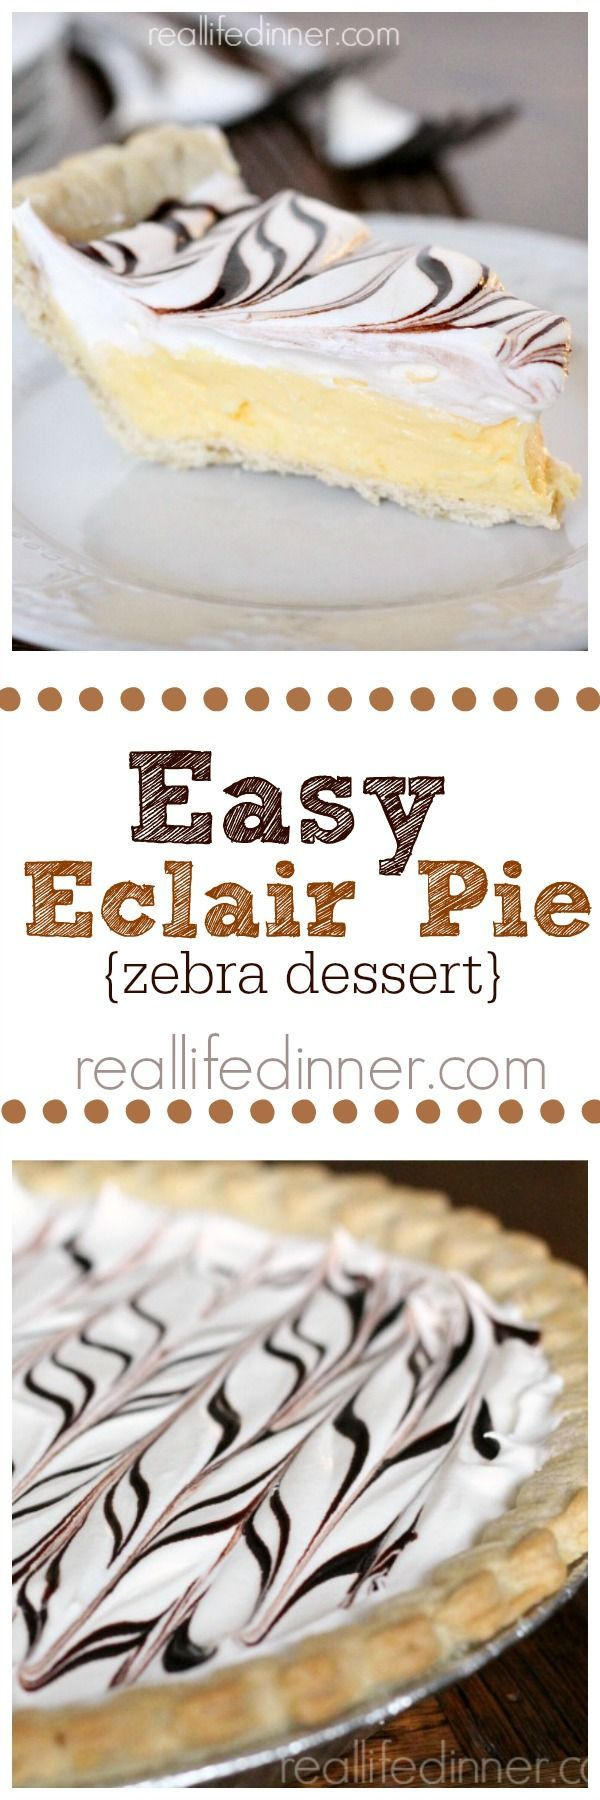 Easy Eclair Pie Recipe, Delicious pie recipe with simple ingredients, easy to follow instructions, and the results are incredible. A must make! ~ http://reallifedinner.com